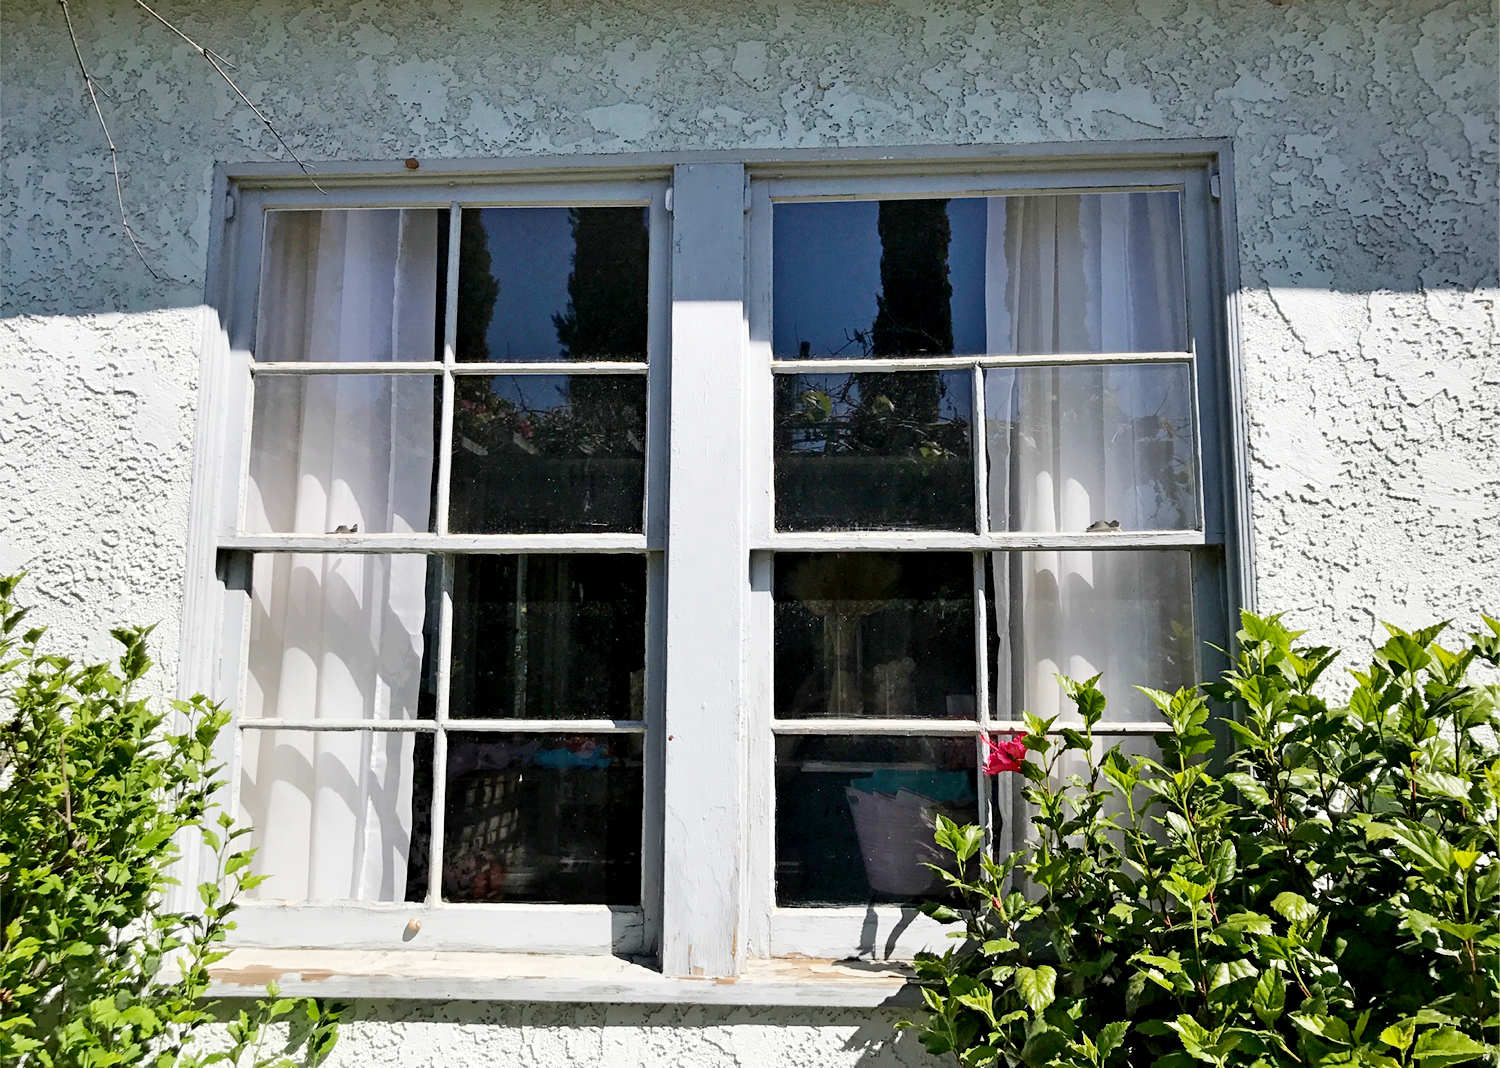 Dale M. In Whittier was tired of painting the wood jambs and sills and also had a lot of rotten wood.